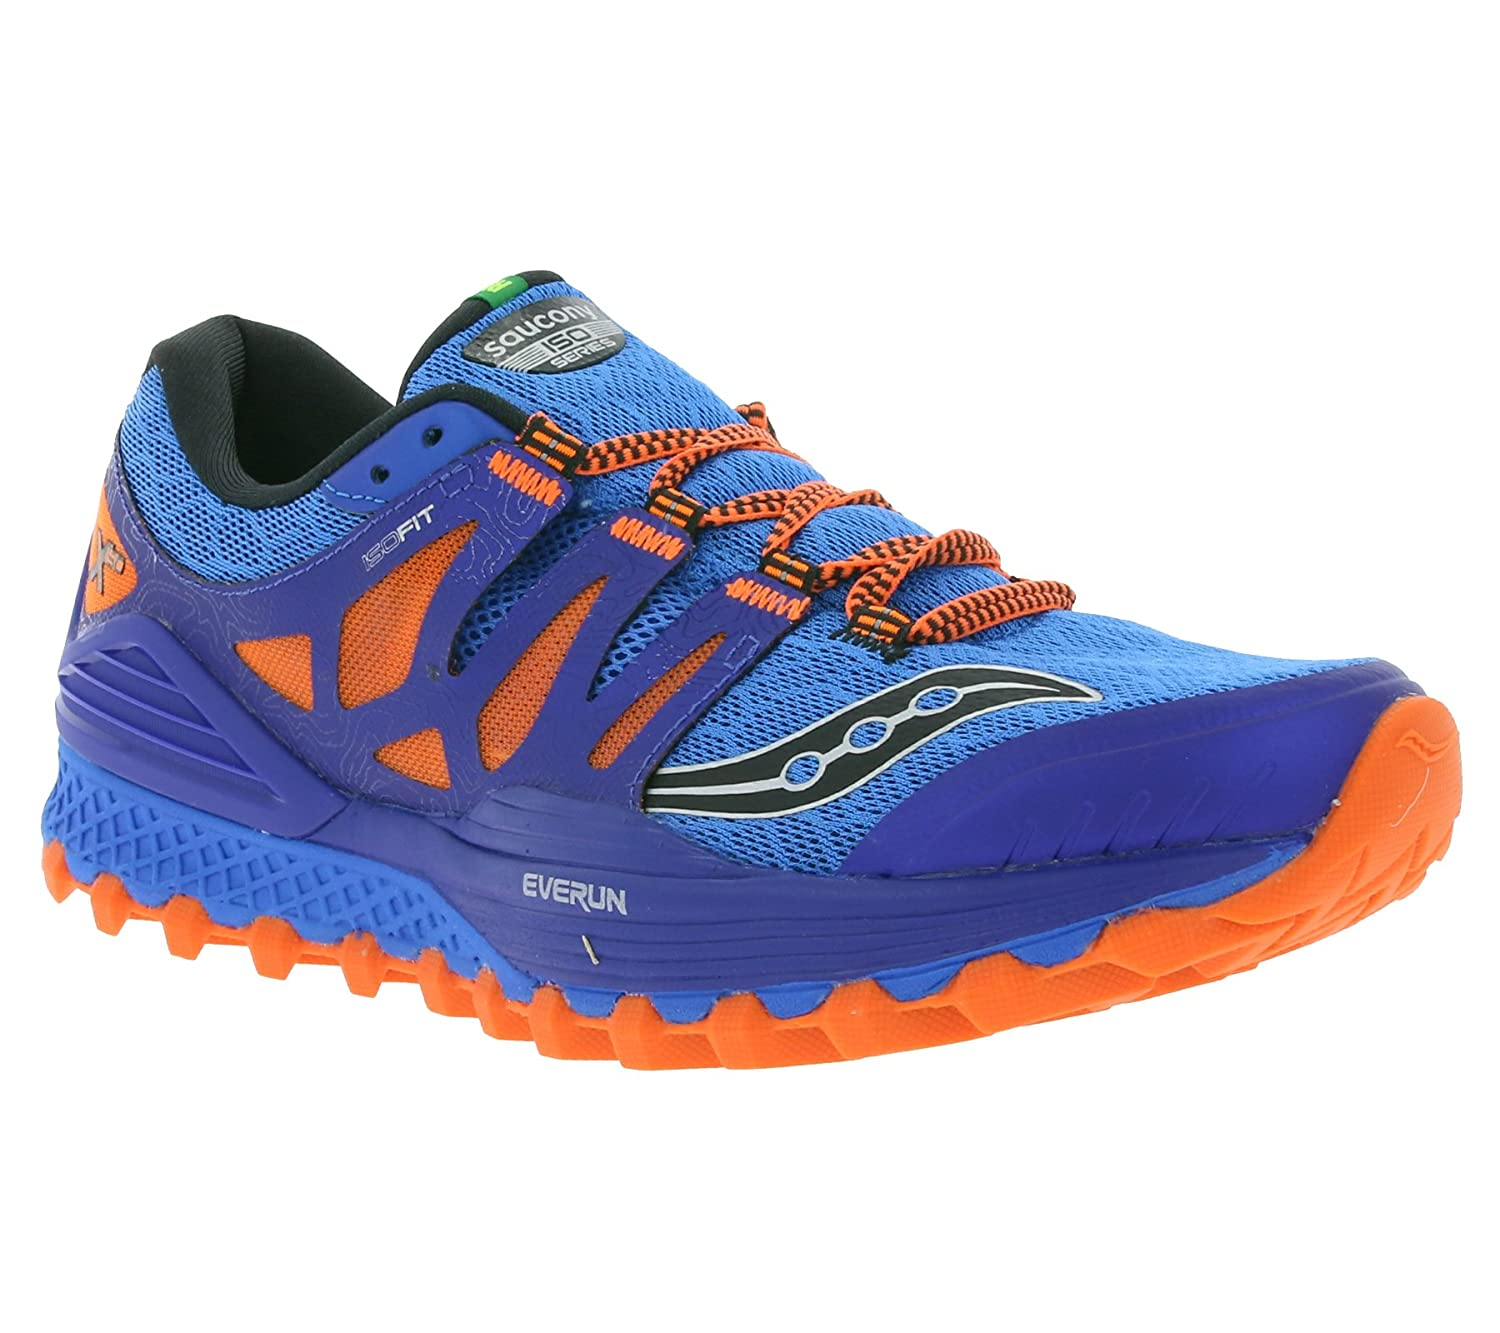 Saucony 20325-5, Zapatillas de Trail Running Unisex Adulto